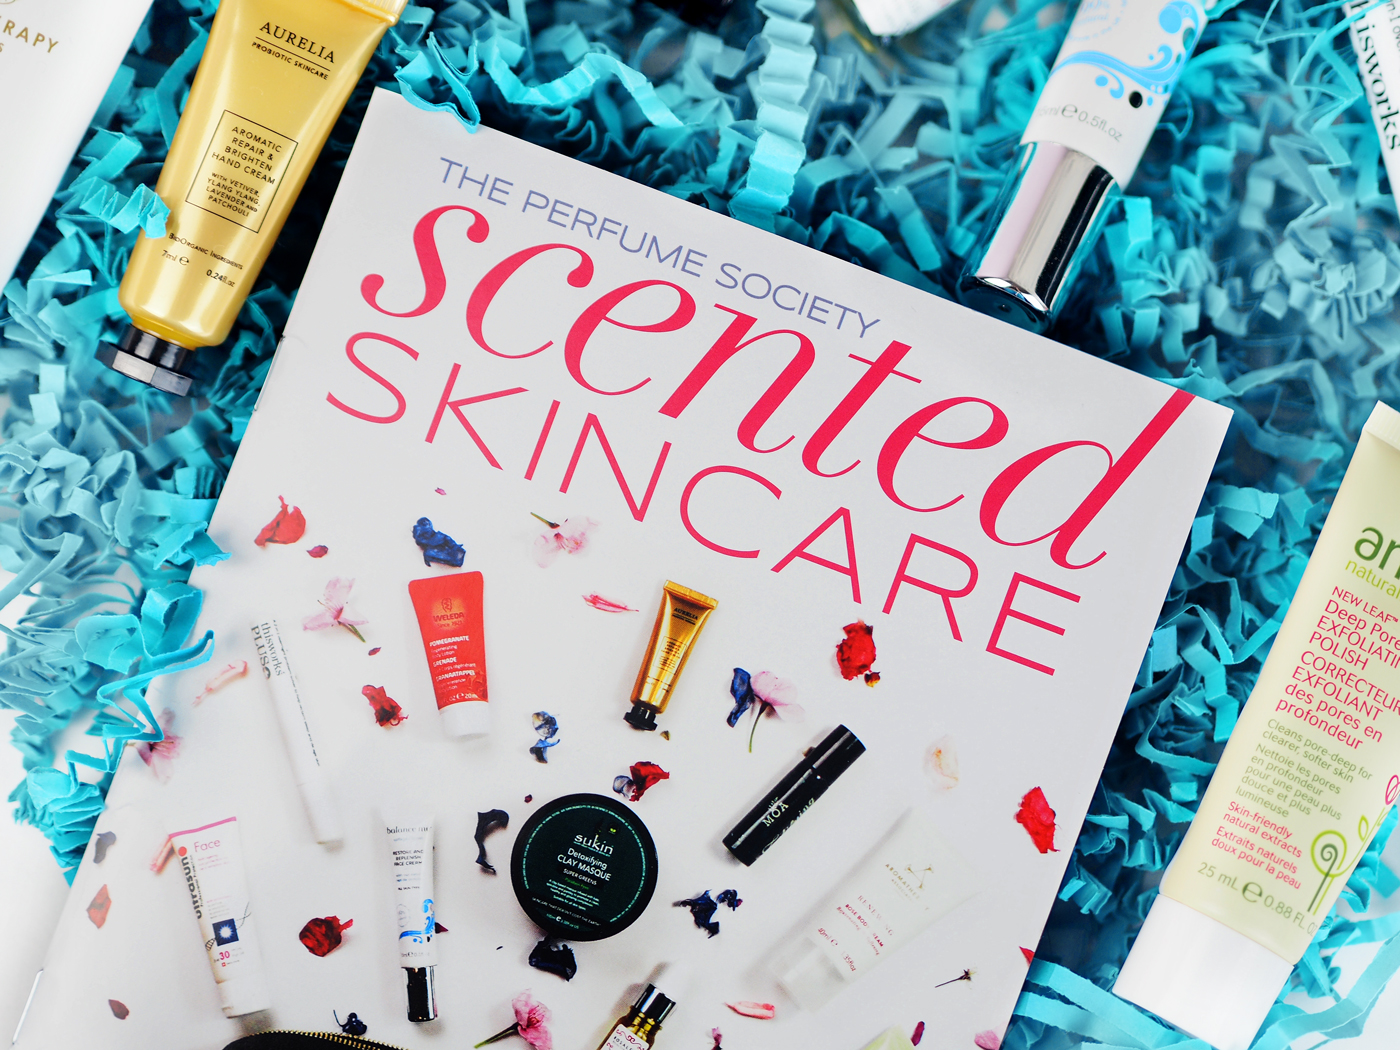 The Perfume Society Scented Skincare Unboxing